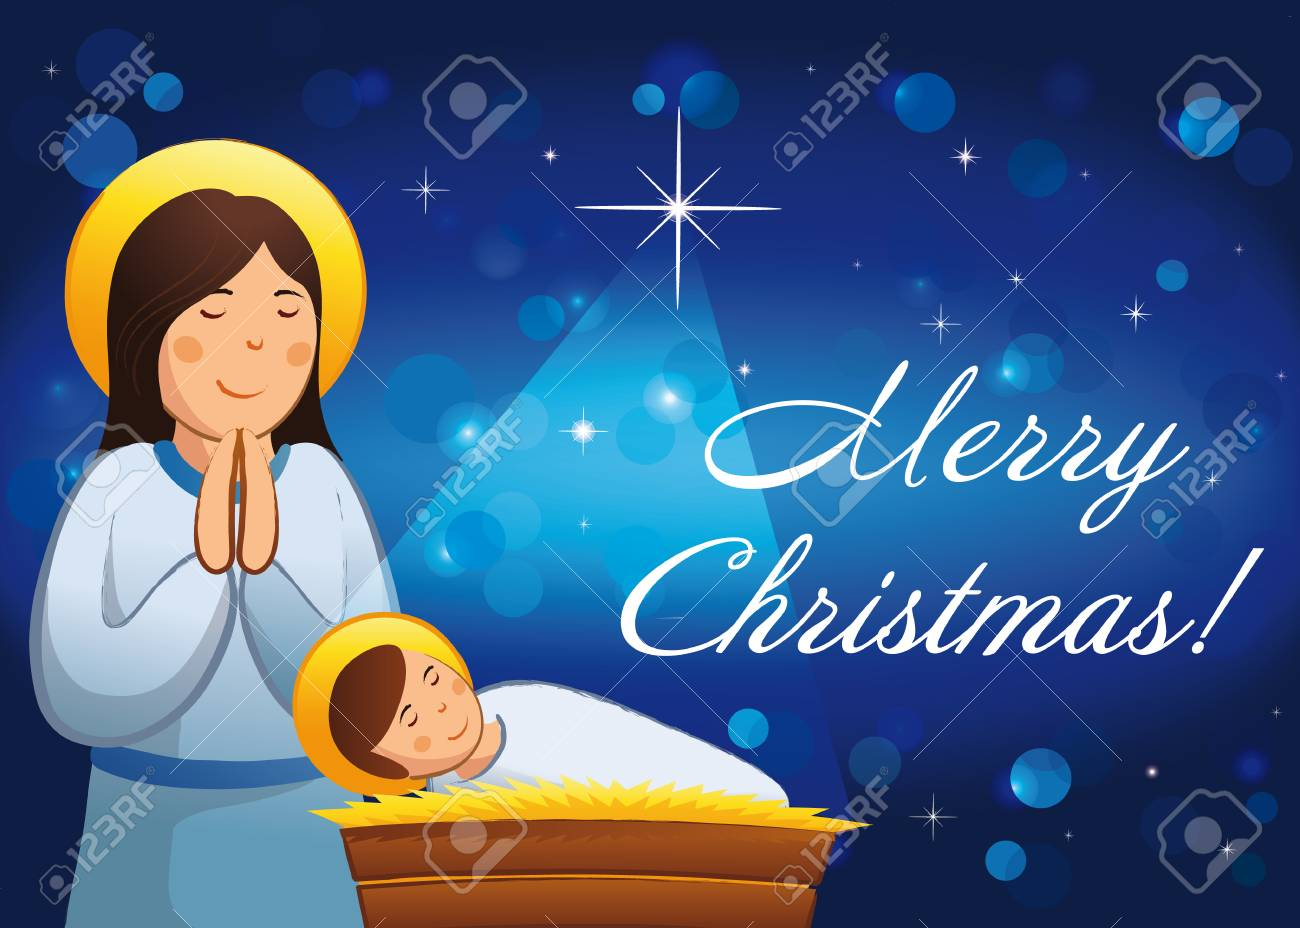 merry christmas a happy new year religious greetings celebrating